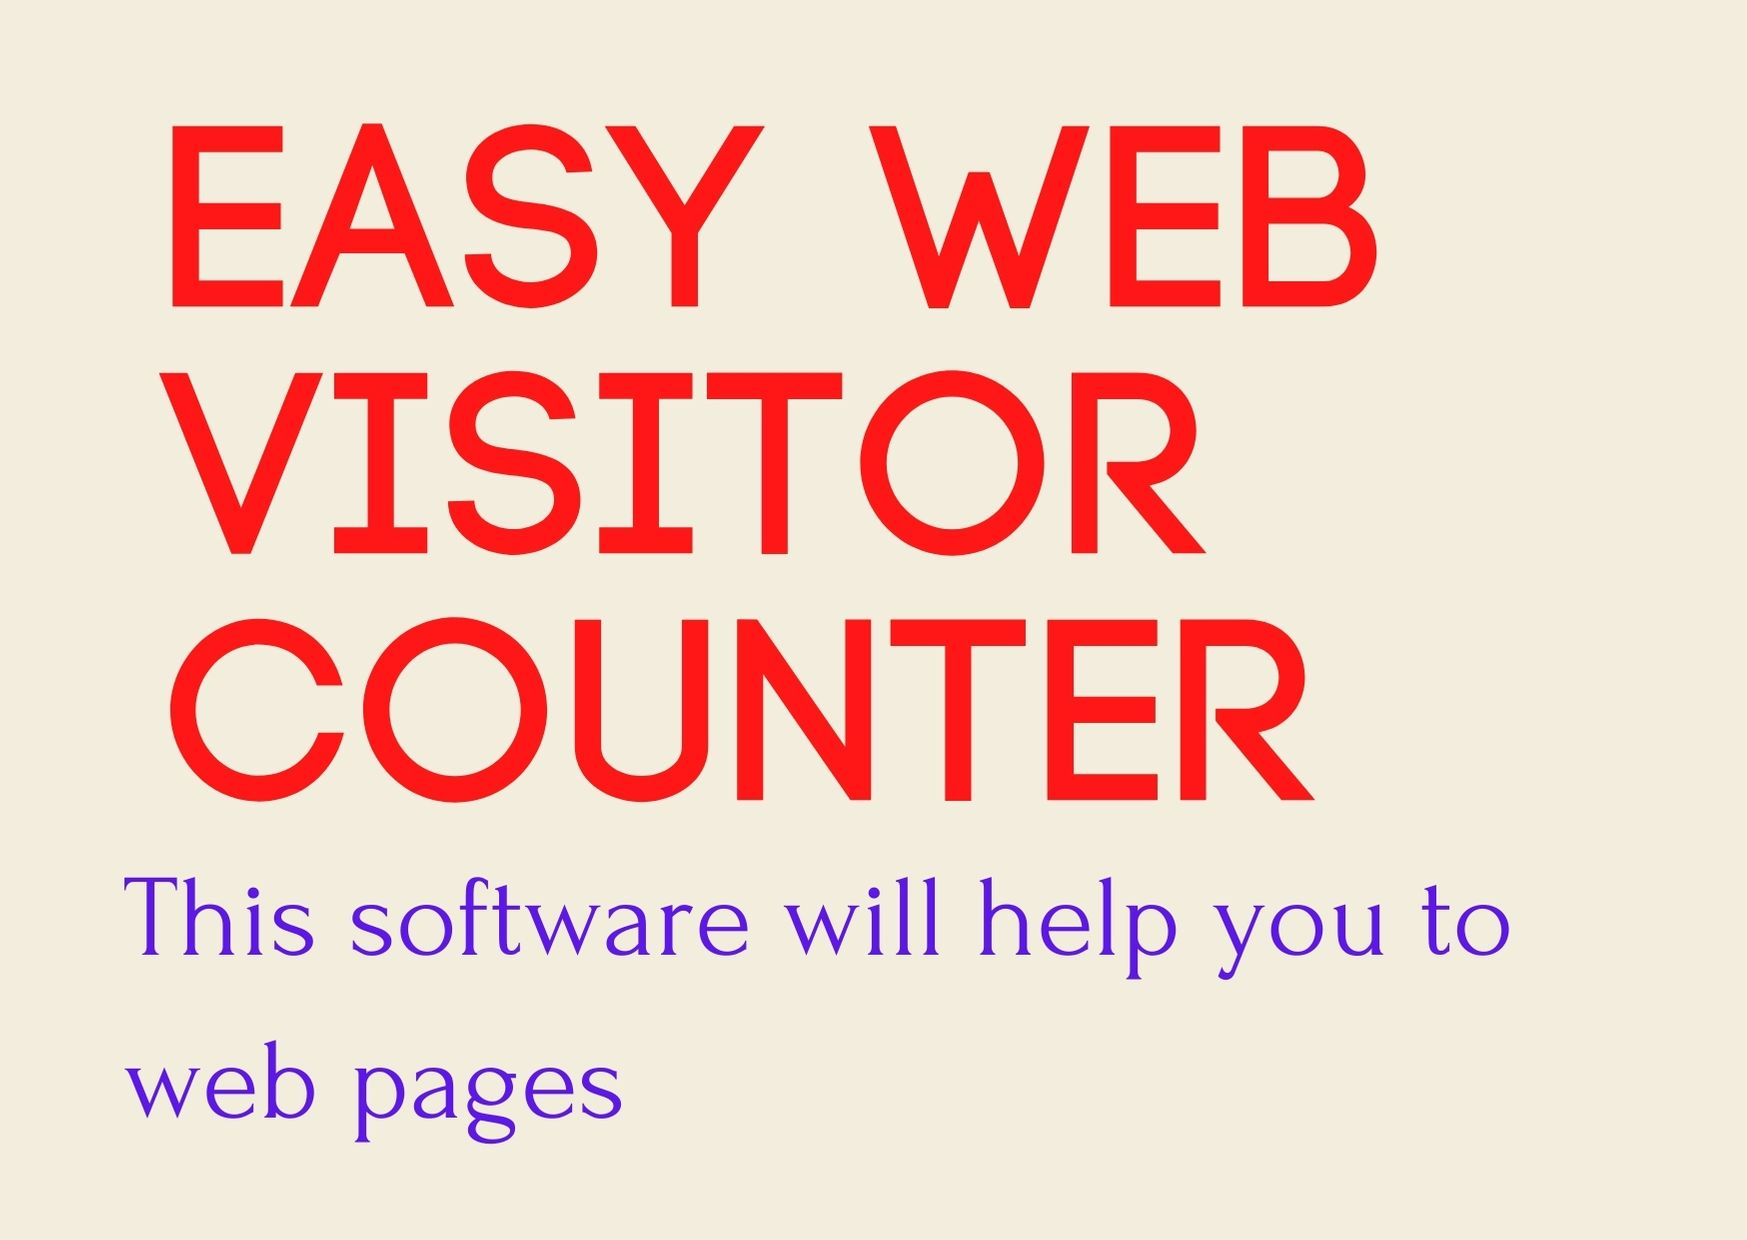 Easy Web Visitor Counter - help you to web pages